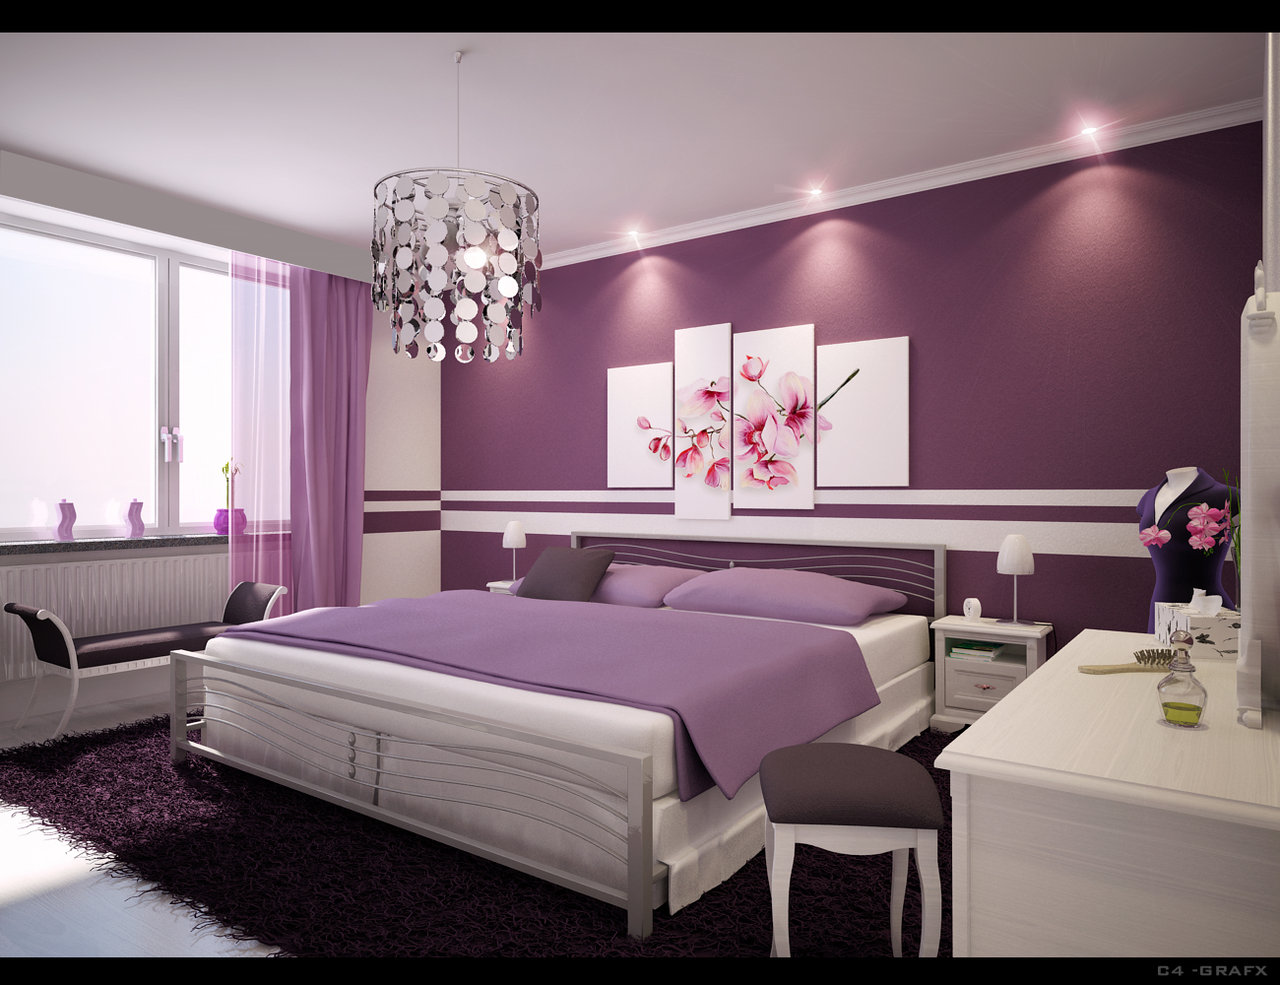 Bedroom Paint Ideas In Pakistan beautiful bedrooms